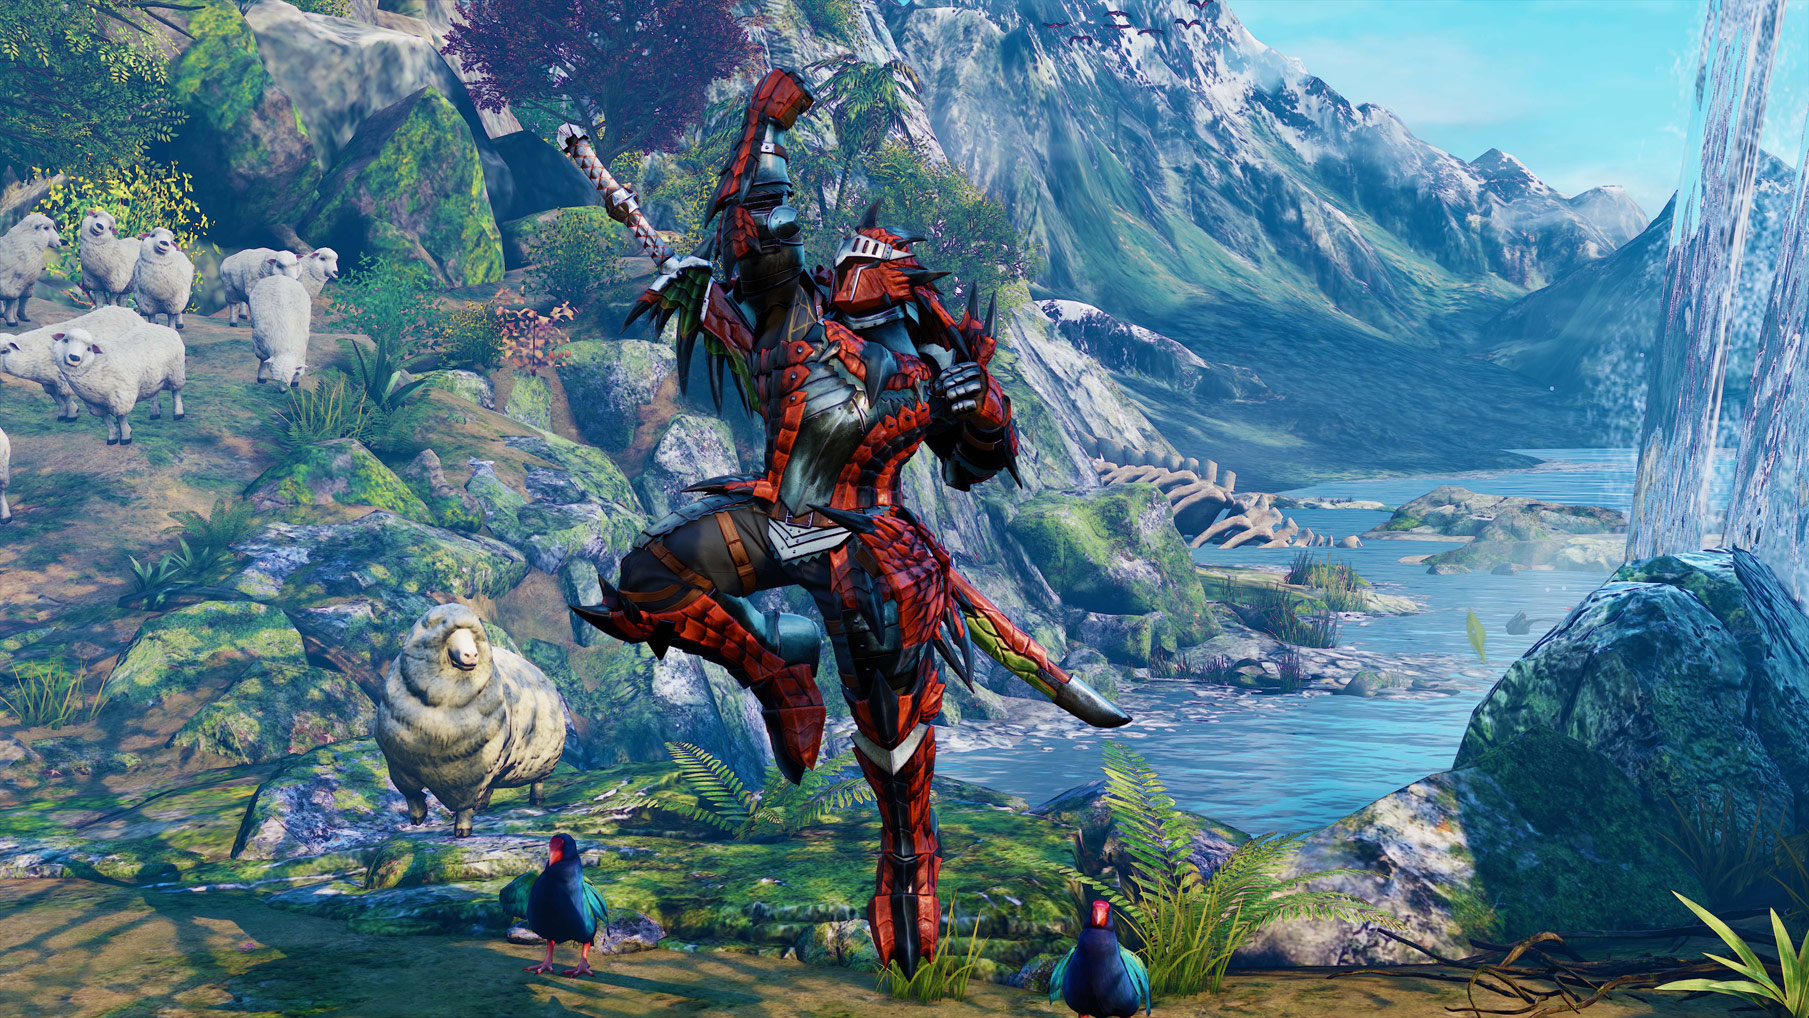 Monster Hunter Costumes Street Fighter 5 2 out of 12 image gallery